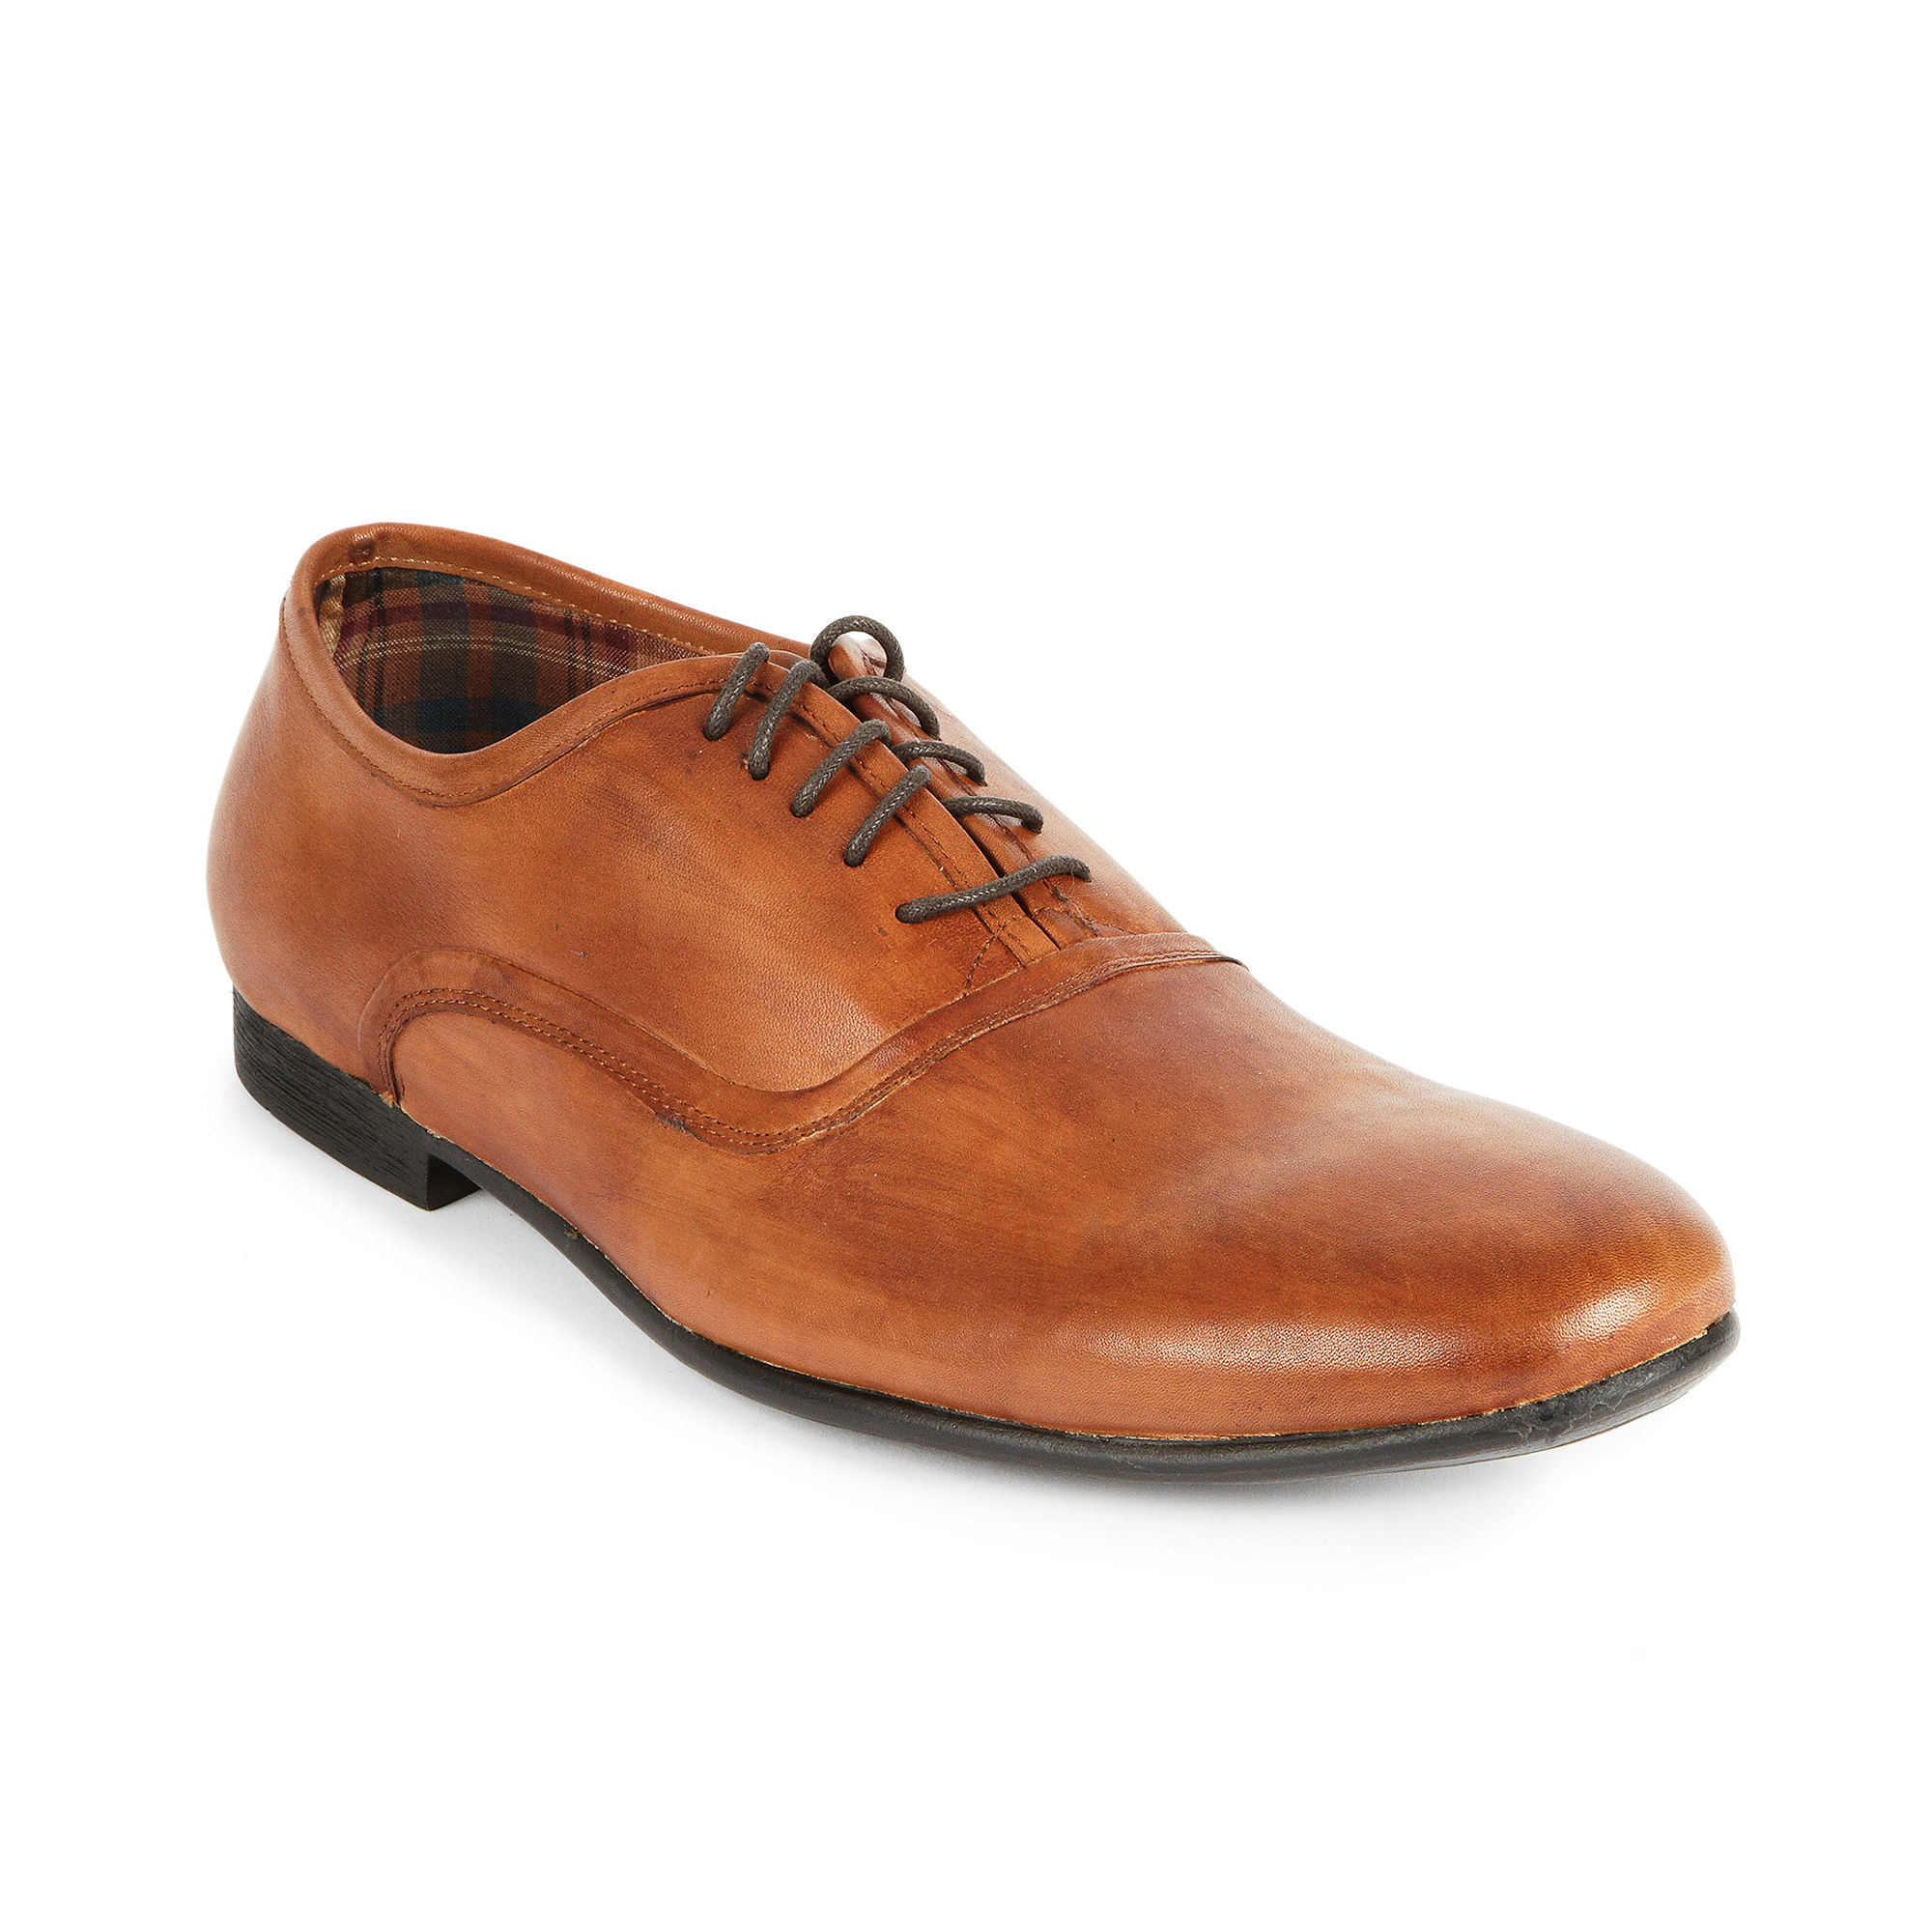 Bed stu Cosburn Lace Up Oxfords in Brown for Men